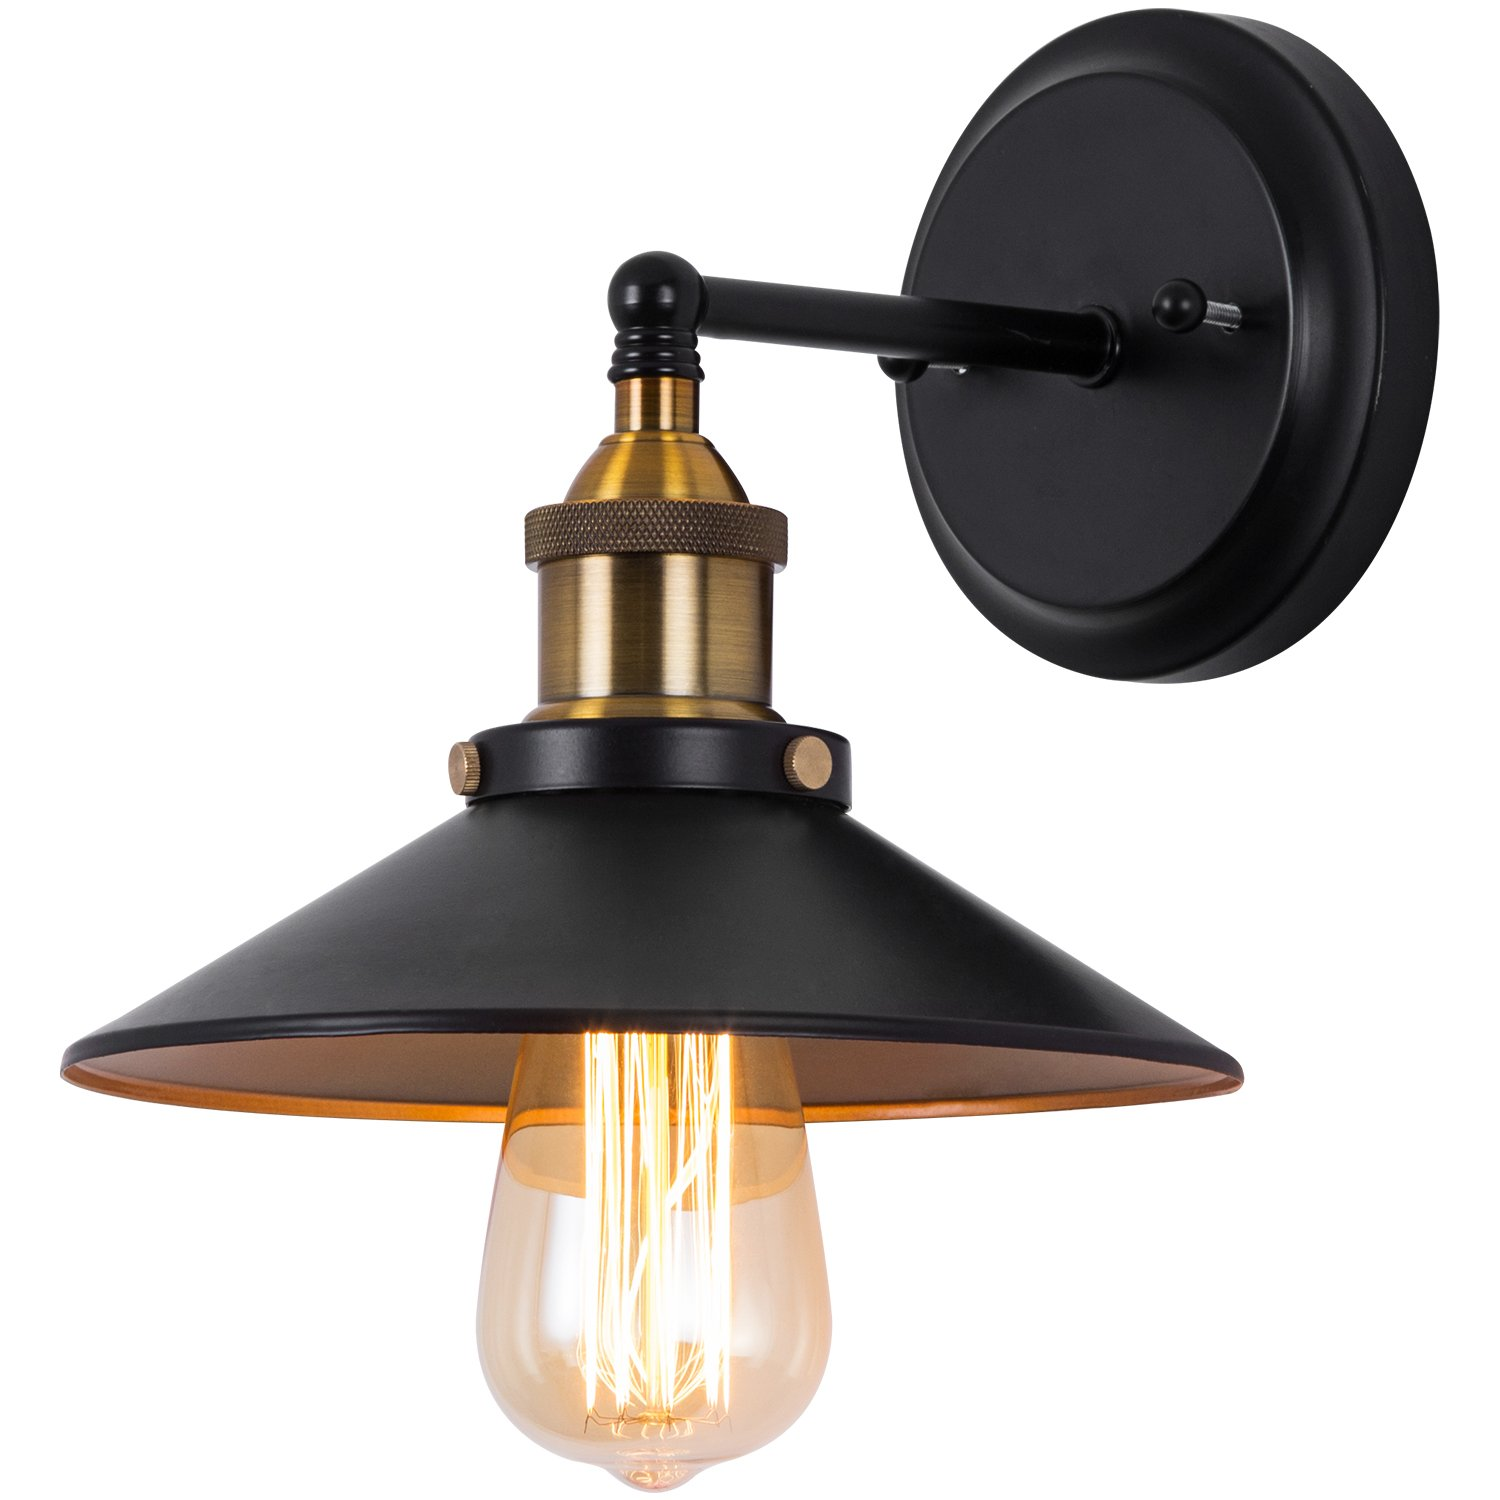 Industrial Wall Sconce Light, Vintage Edison Wall Lamp Antique Style Loft Retro Simplicity Light For Stairway, Hallway, Bar, Club, Aged Matt Black by DONGLAIMEI